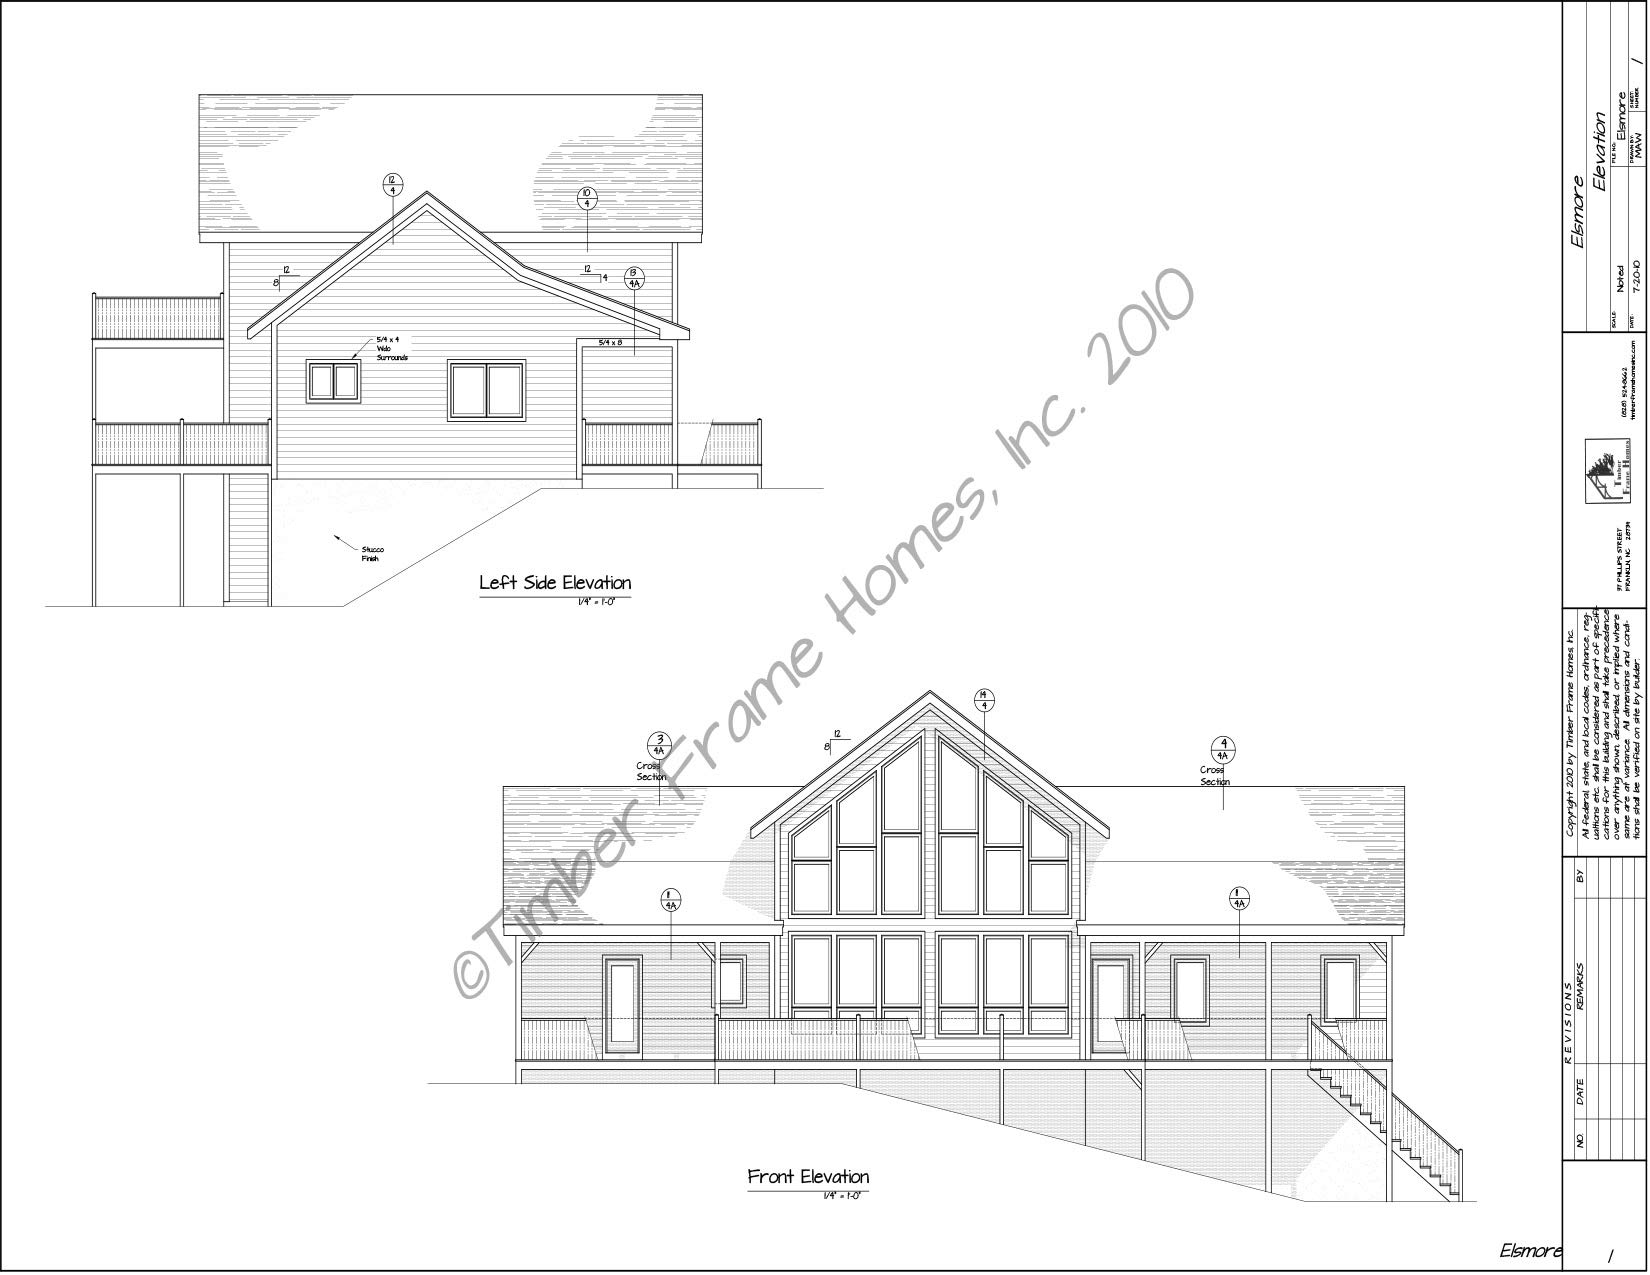 Home Plans - The Elsmore Timber Frame (DESIGN PROOF) by TimberStead